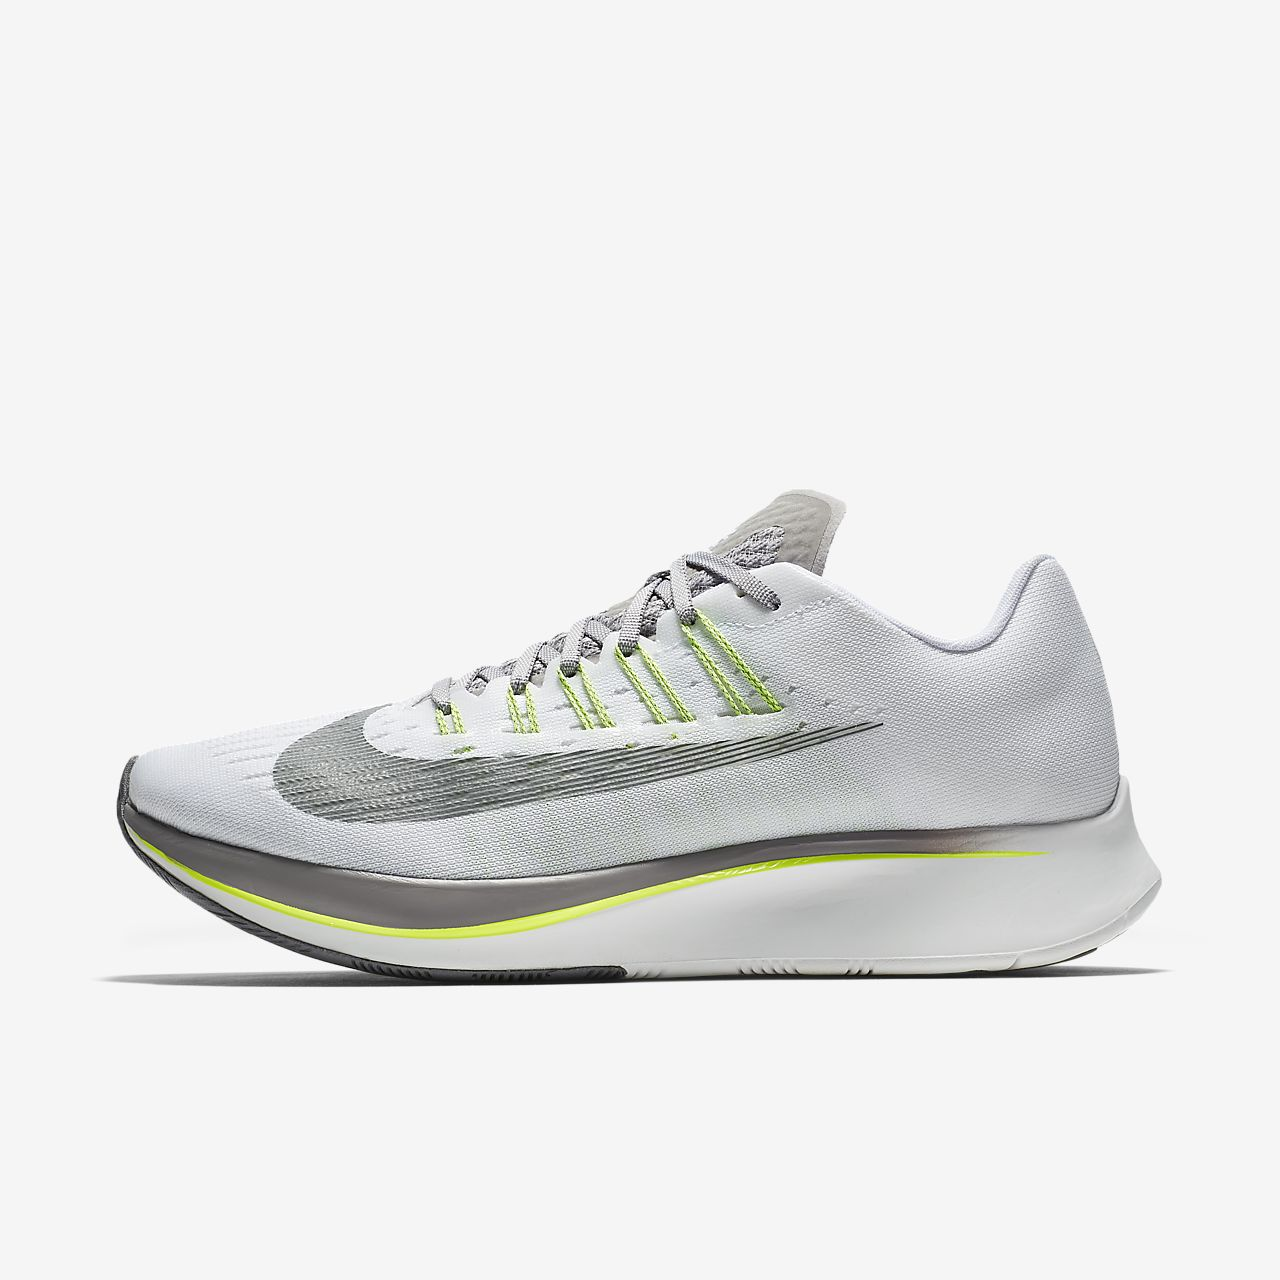 sports shoes 4a2d8 6b70c ... Nike Zoom Fly Men s Running Shoe